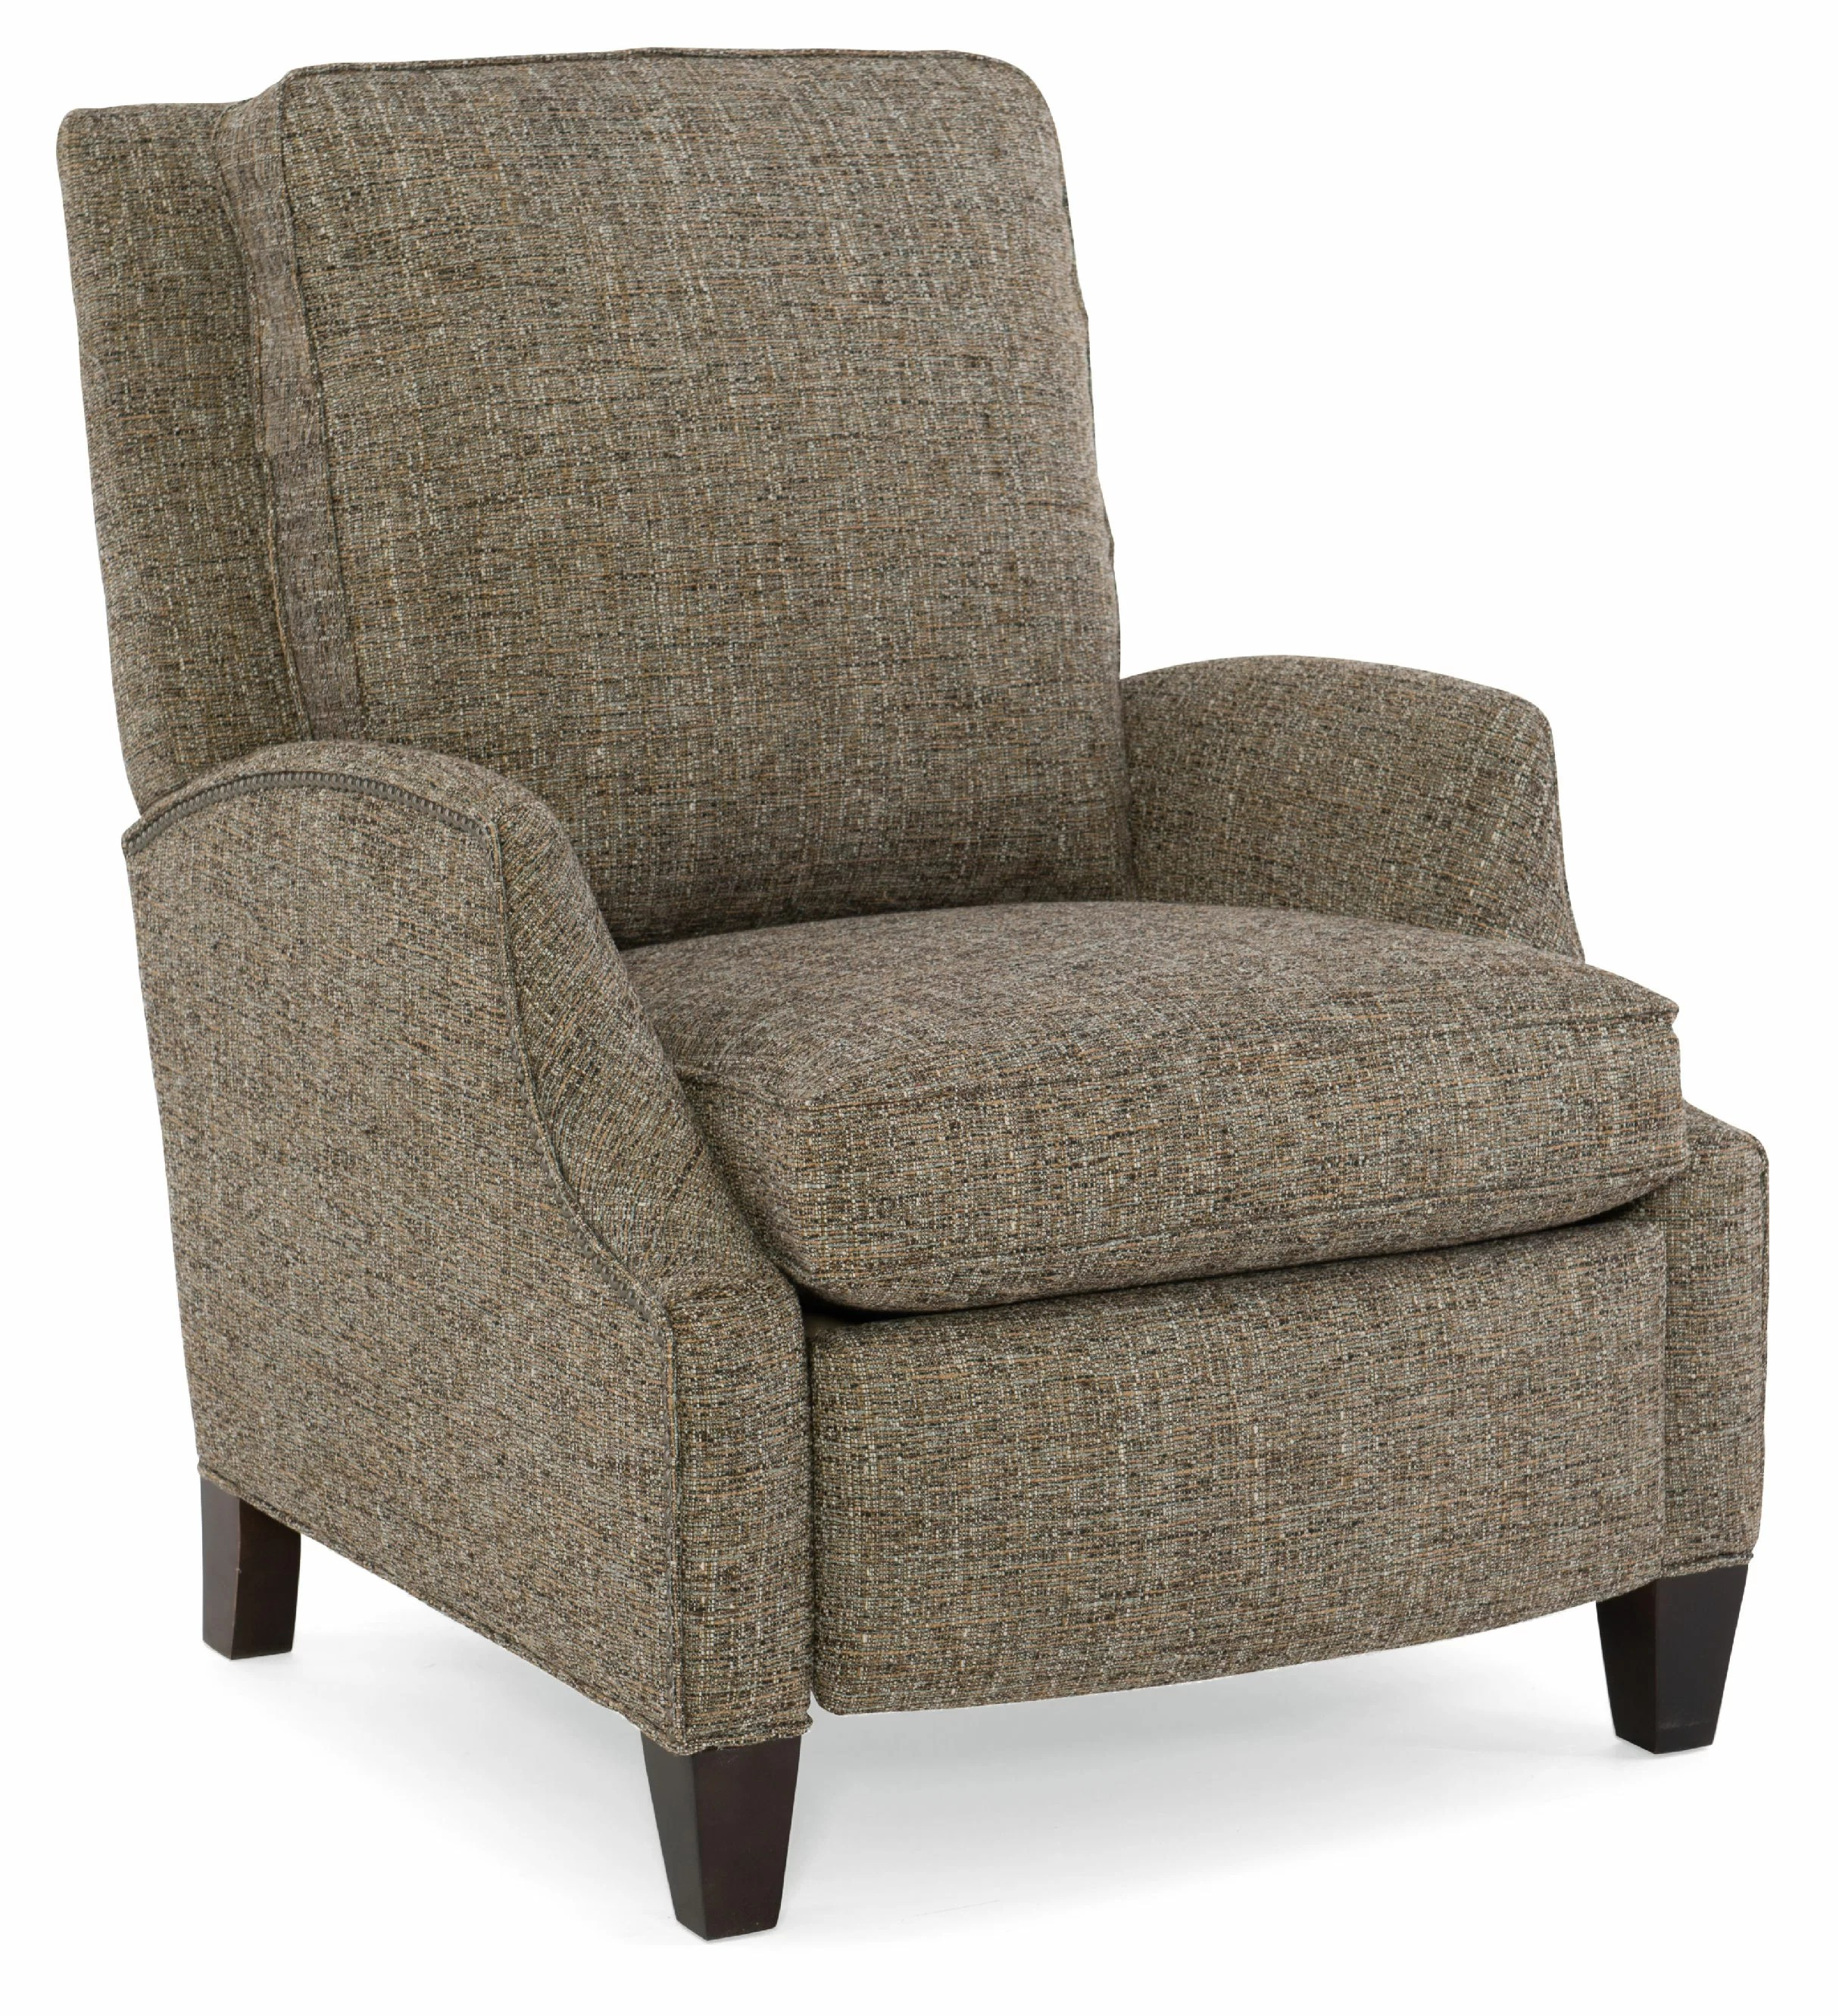 Sam Moore Chairs Demetrius Manual Recliner